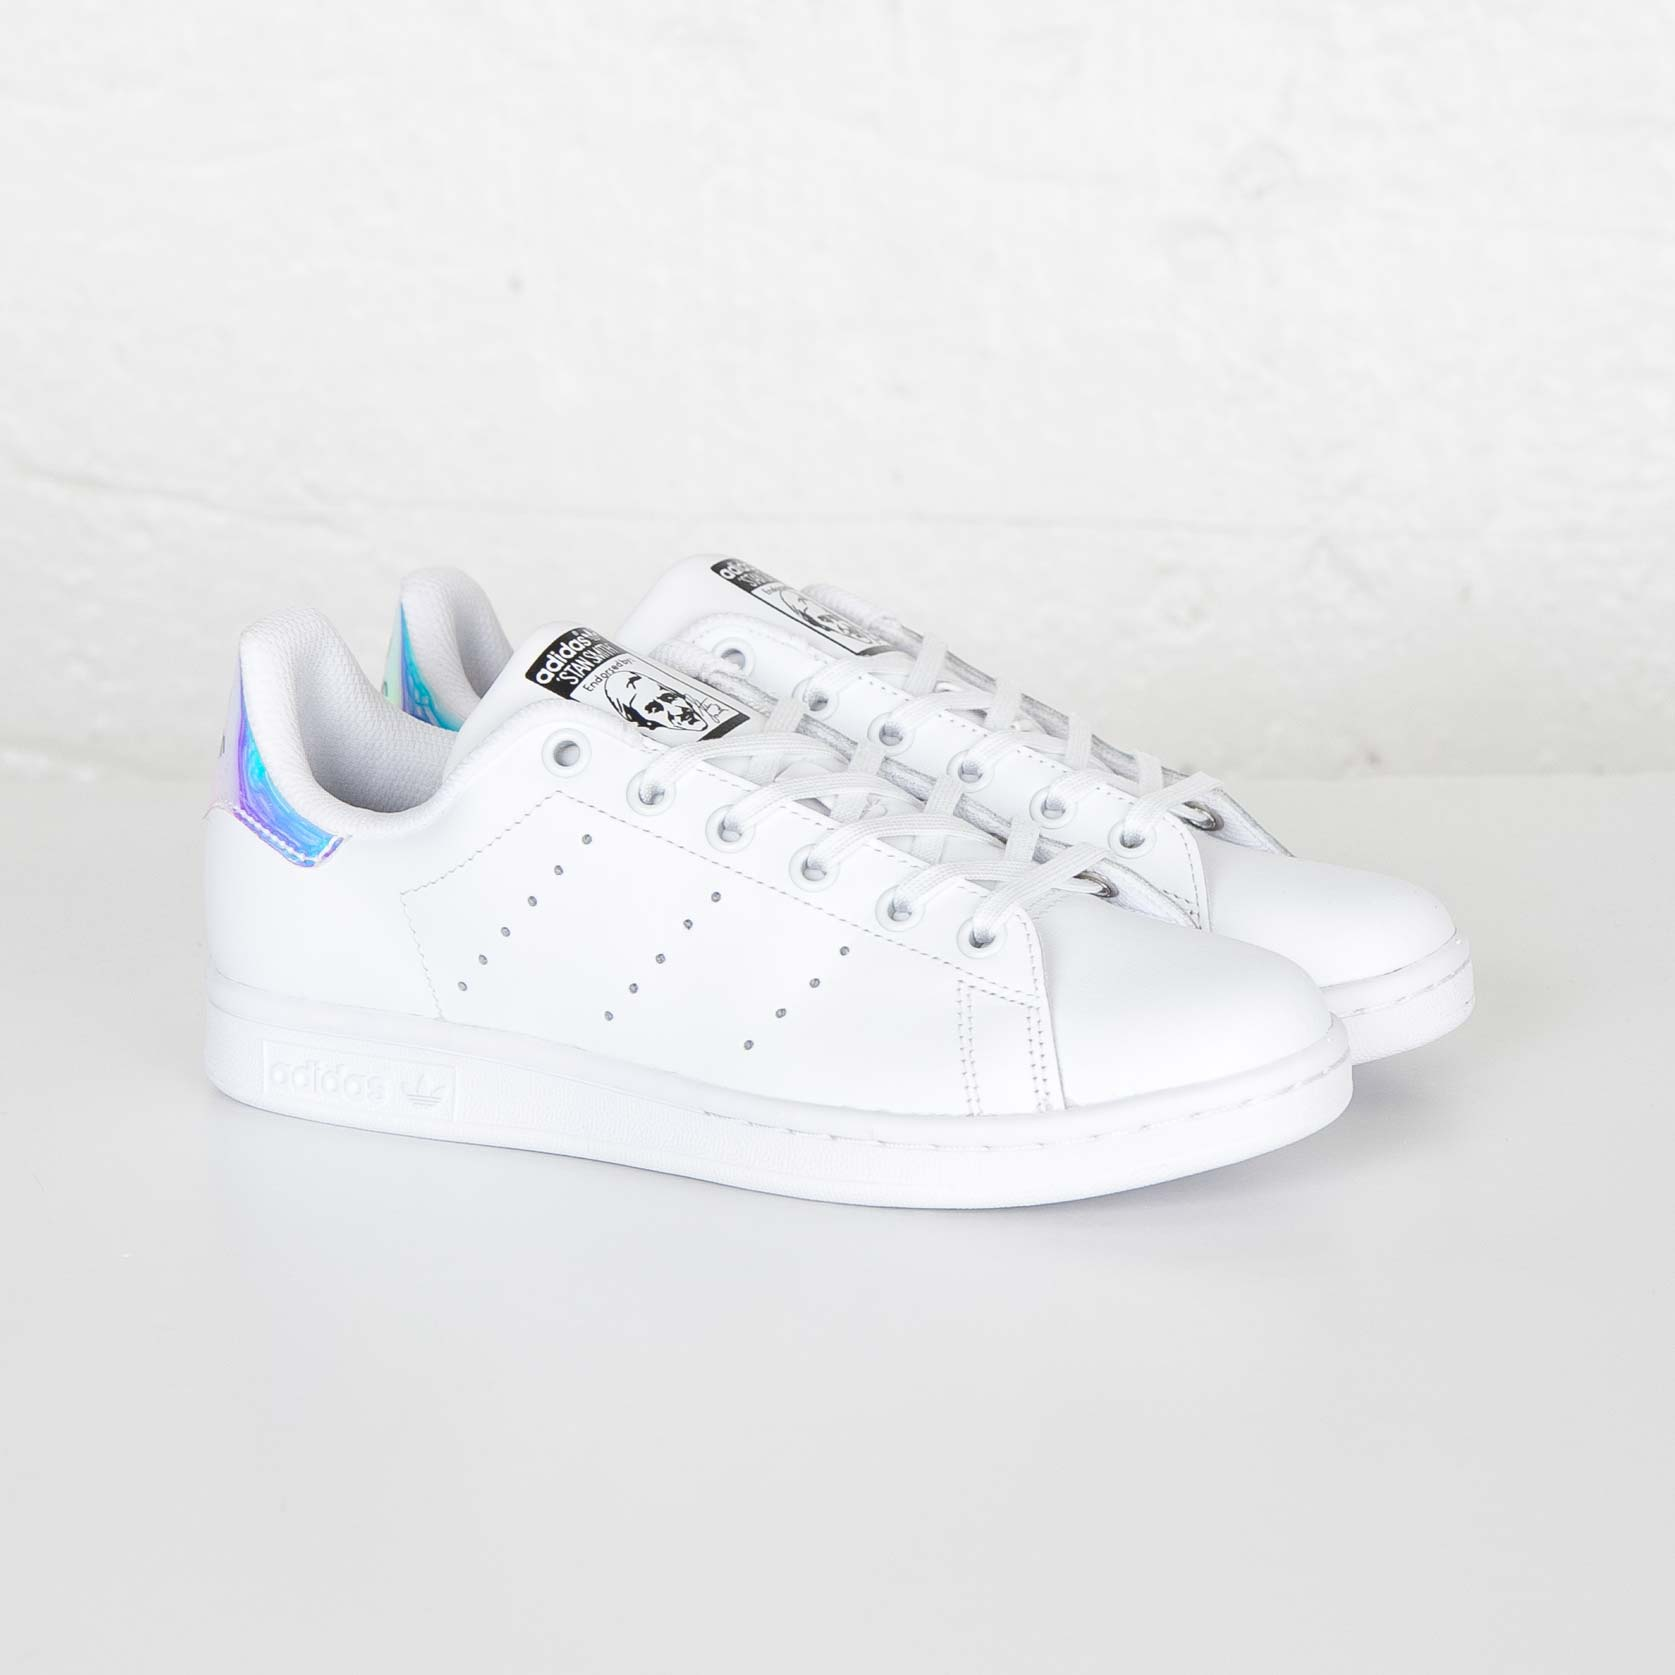 03073988beb624 adidas stan smith irise. Adidas Originals Stan Smith Irisé ( Femme Tailles  ...